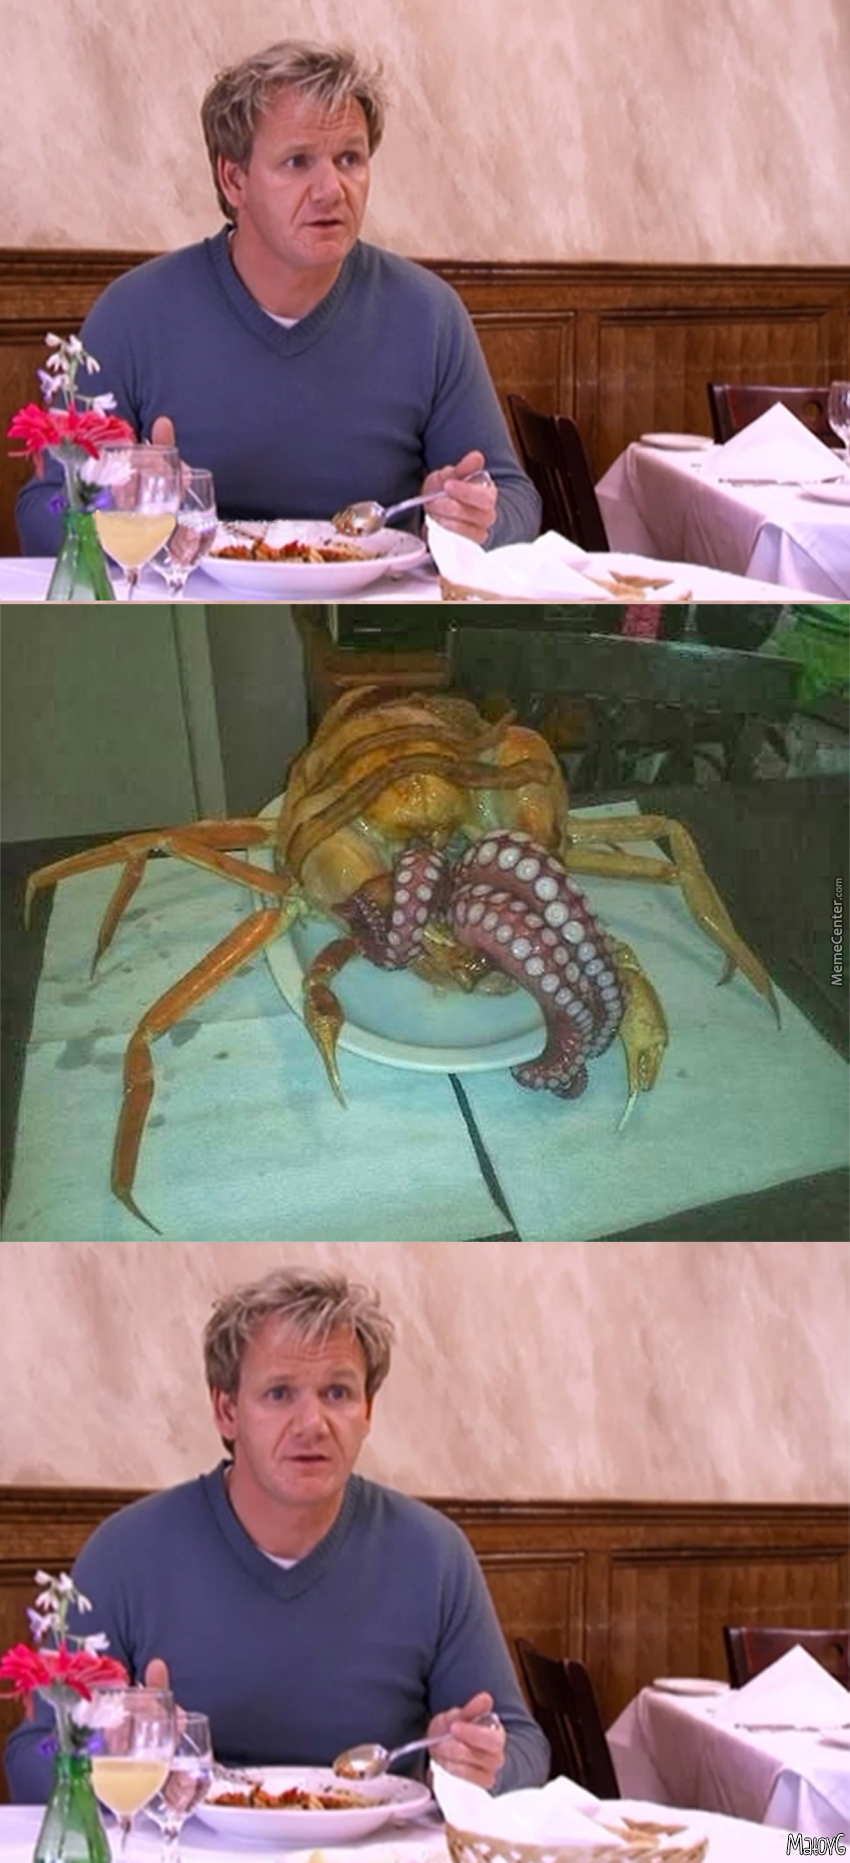 This Octopus Is So Raw, It's Trying To Lurk Under My Apron And Do Yaoi Tentacle Rape On Me!